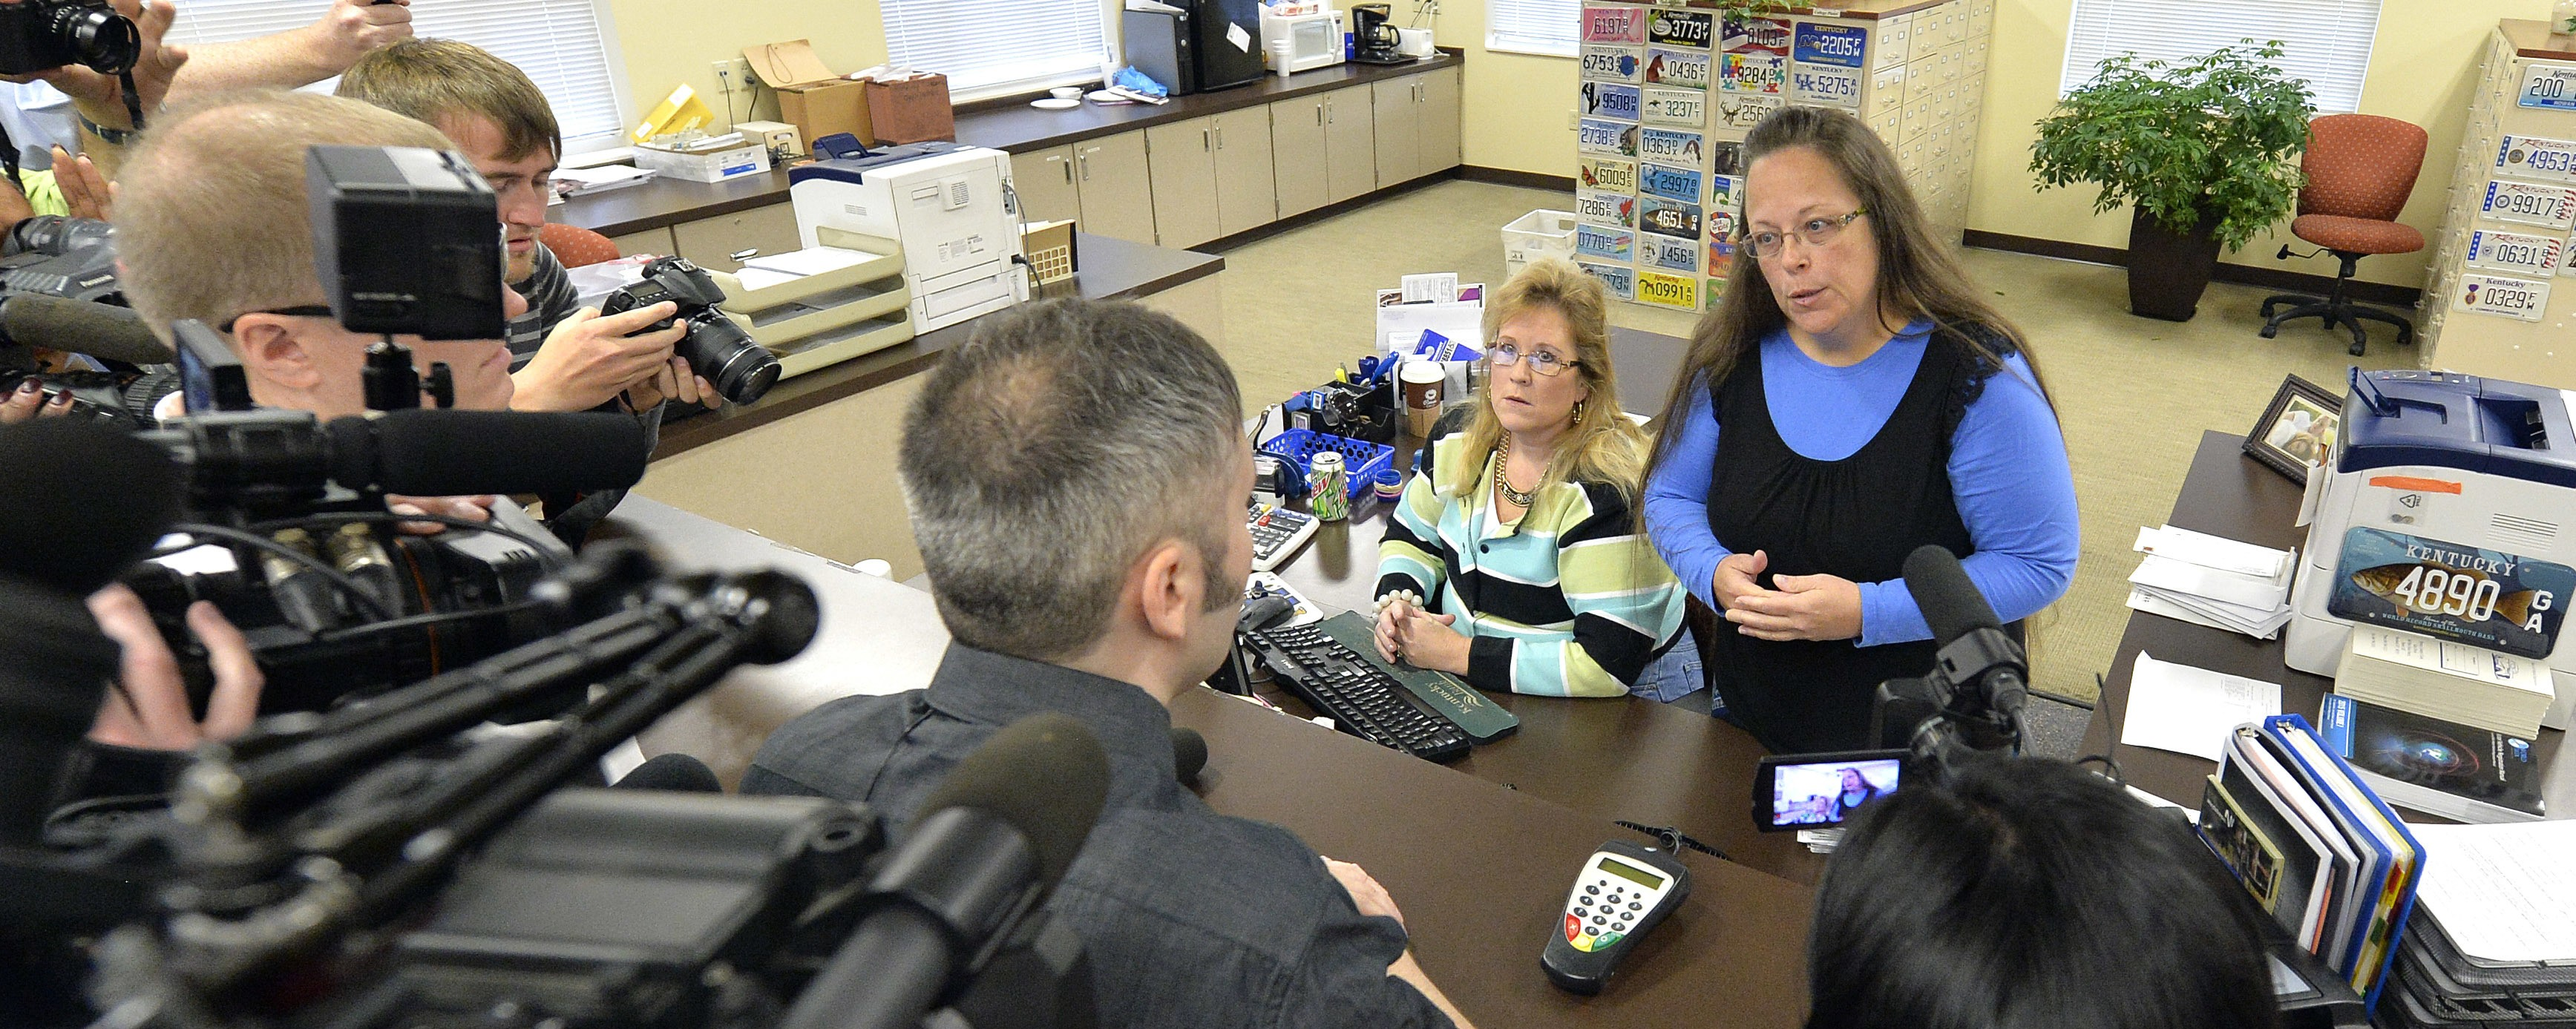 Video Shows Kentucky Clerk Denying Same-Sex Marriage License Once Again